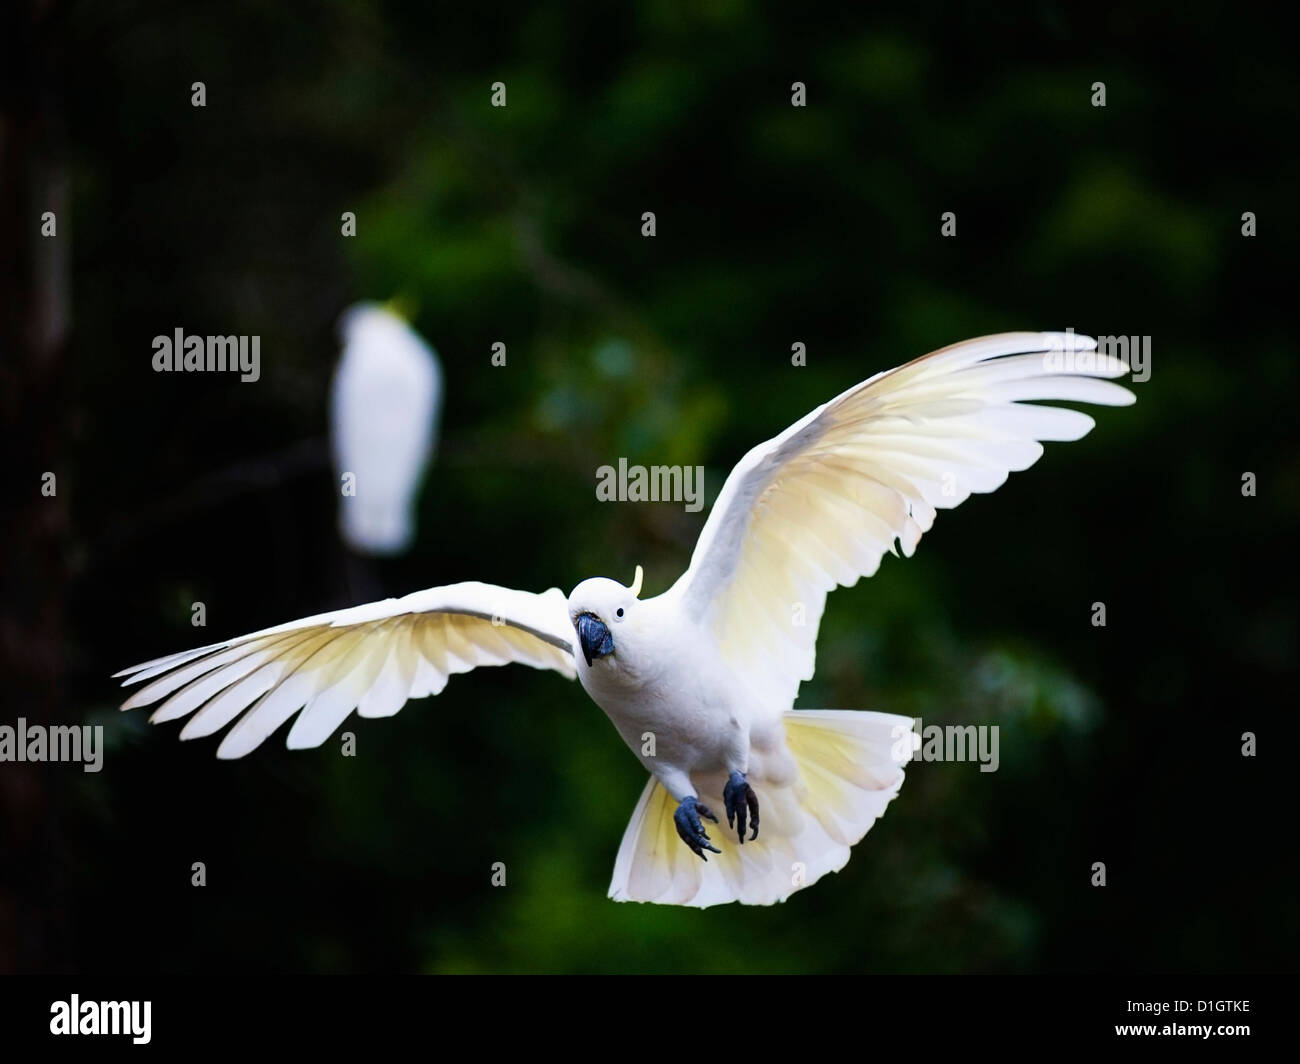 Sulphur-crested cockatoo (Cacatua galerita) flying in Sydney Royal Botanic Gardens, Sydney, New South Wales, Australia, - Stock Image